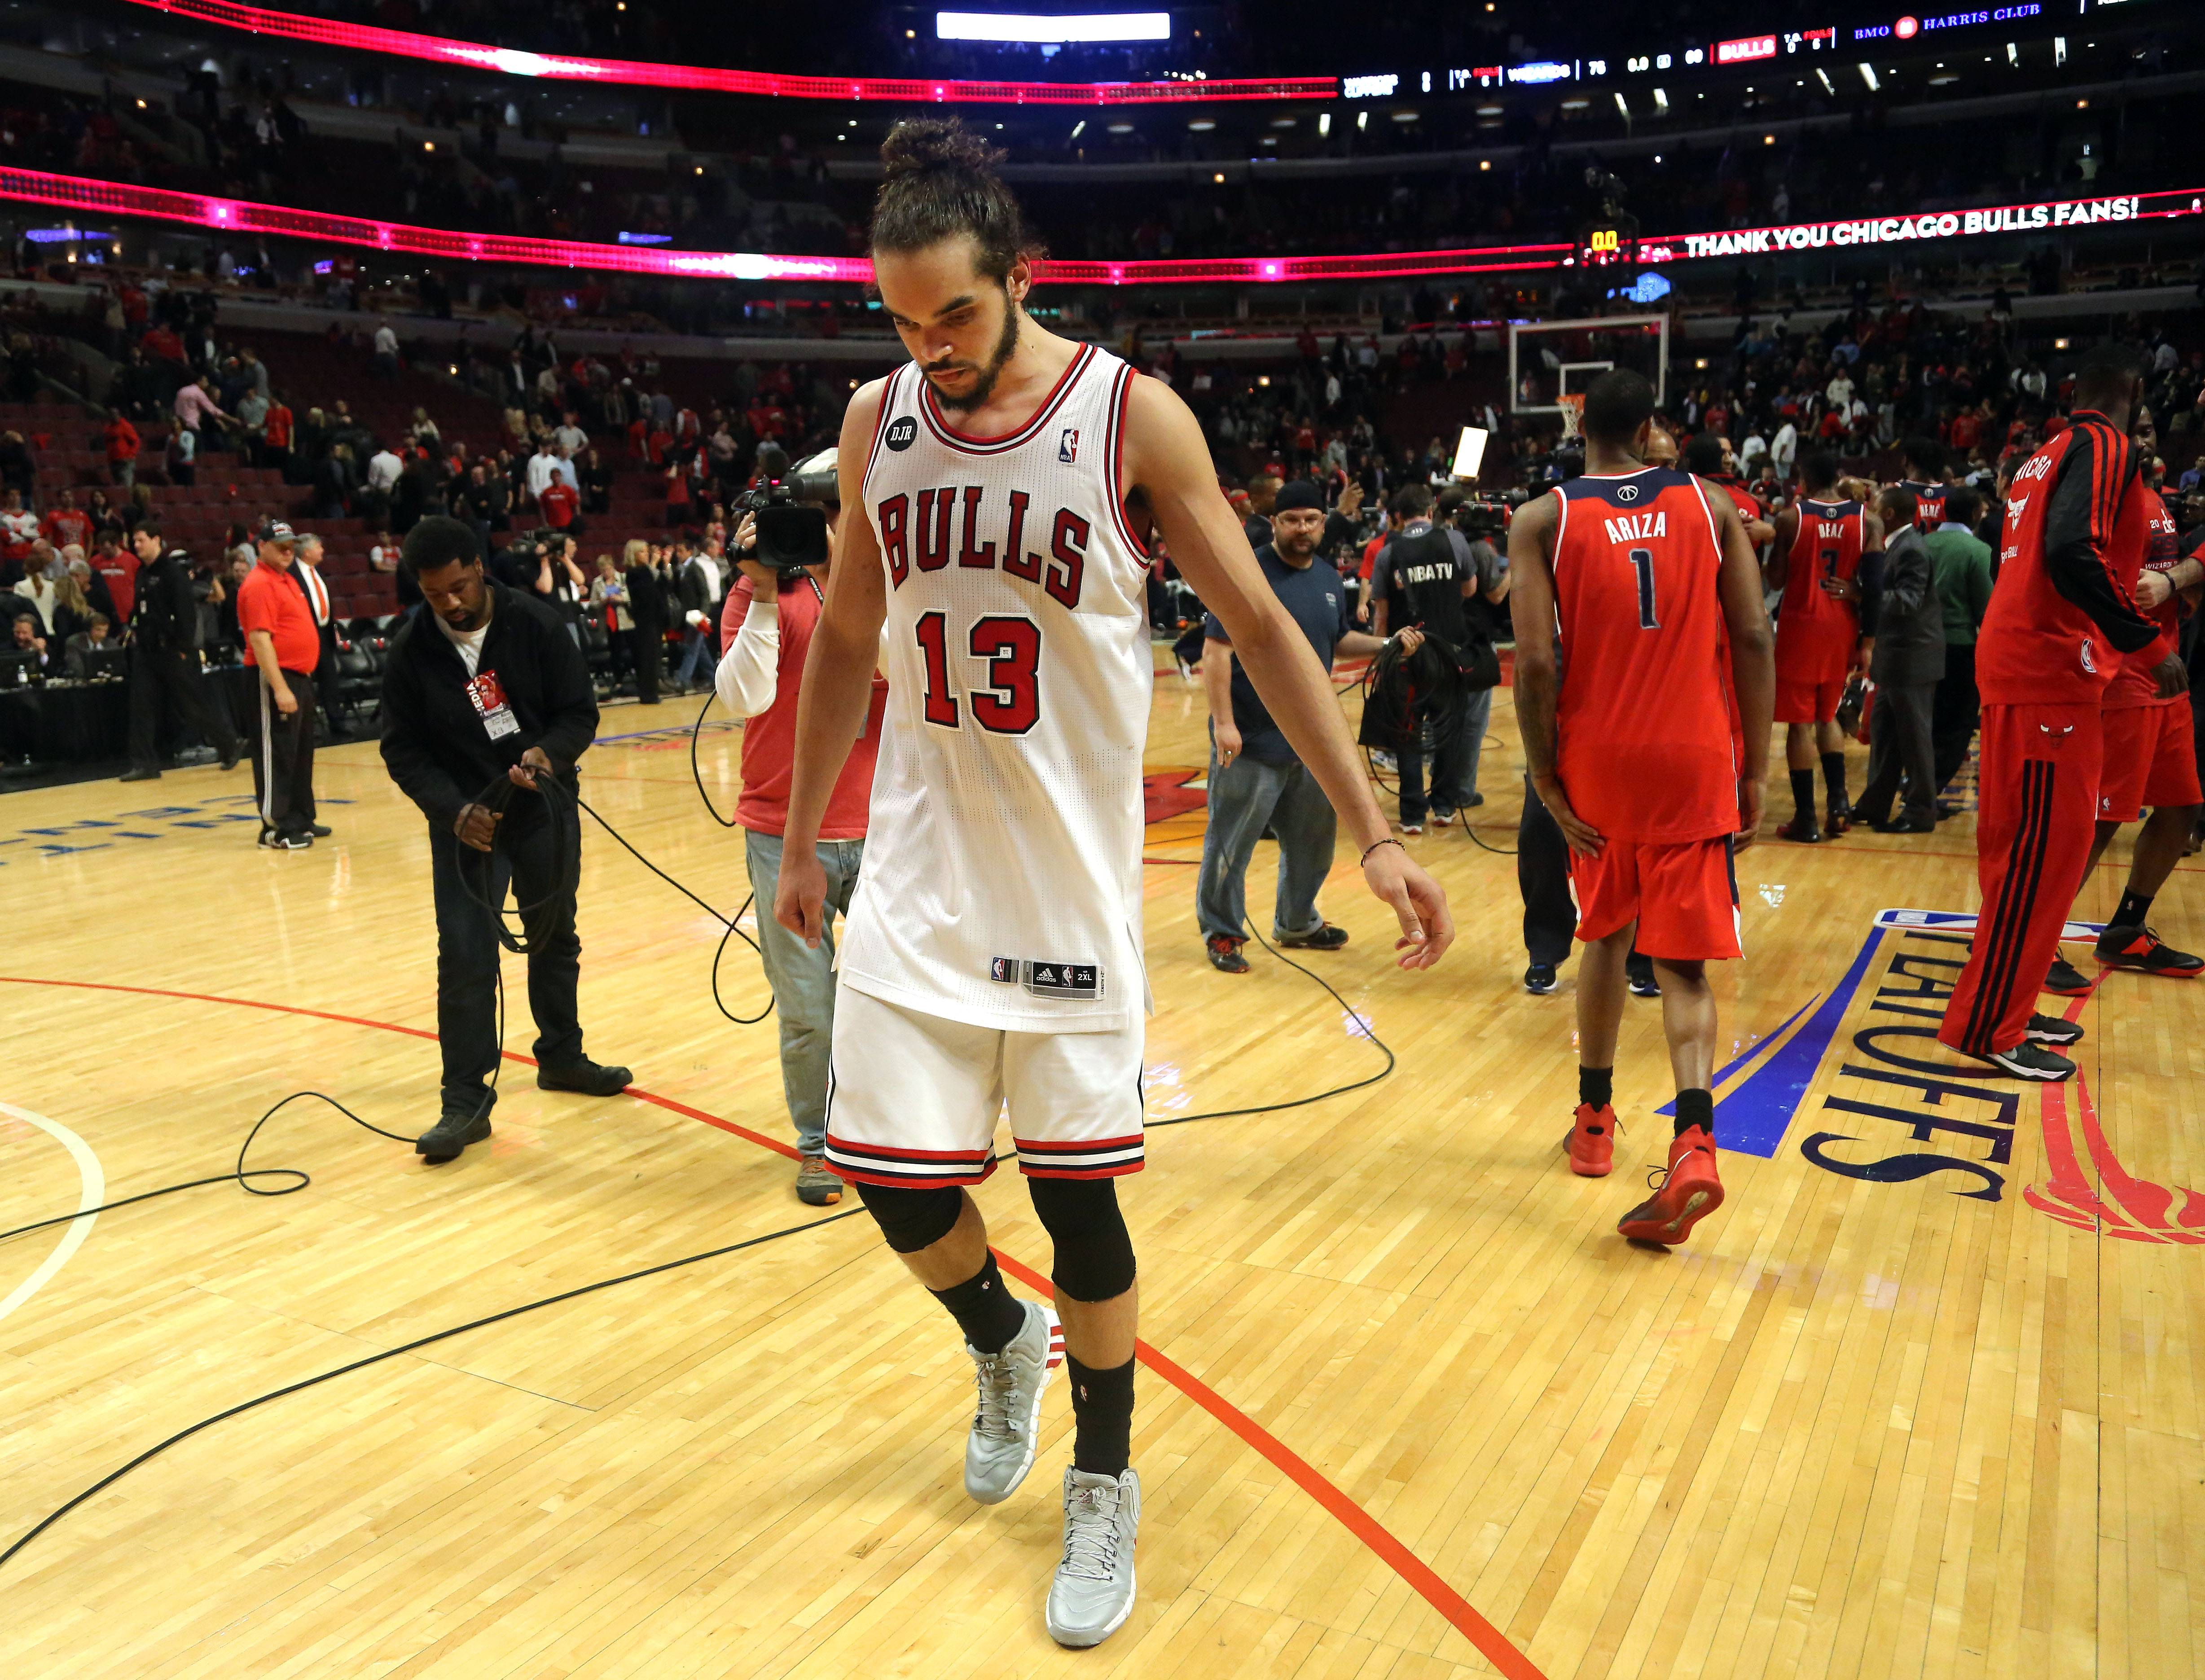 Chicago Bulls center Joakim Noah walks off the floor after the loss.